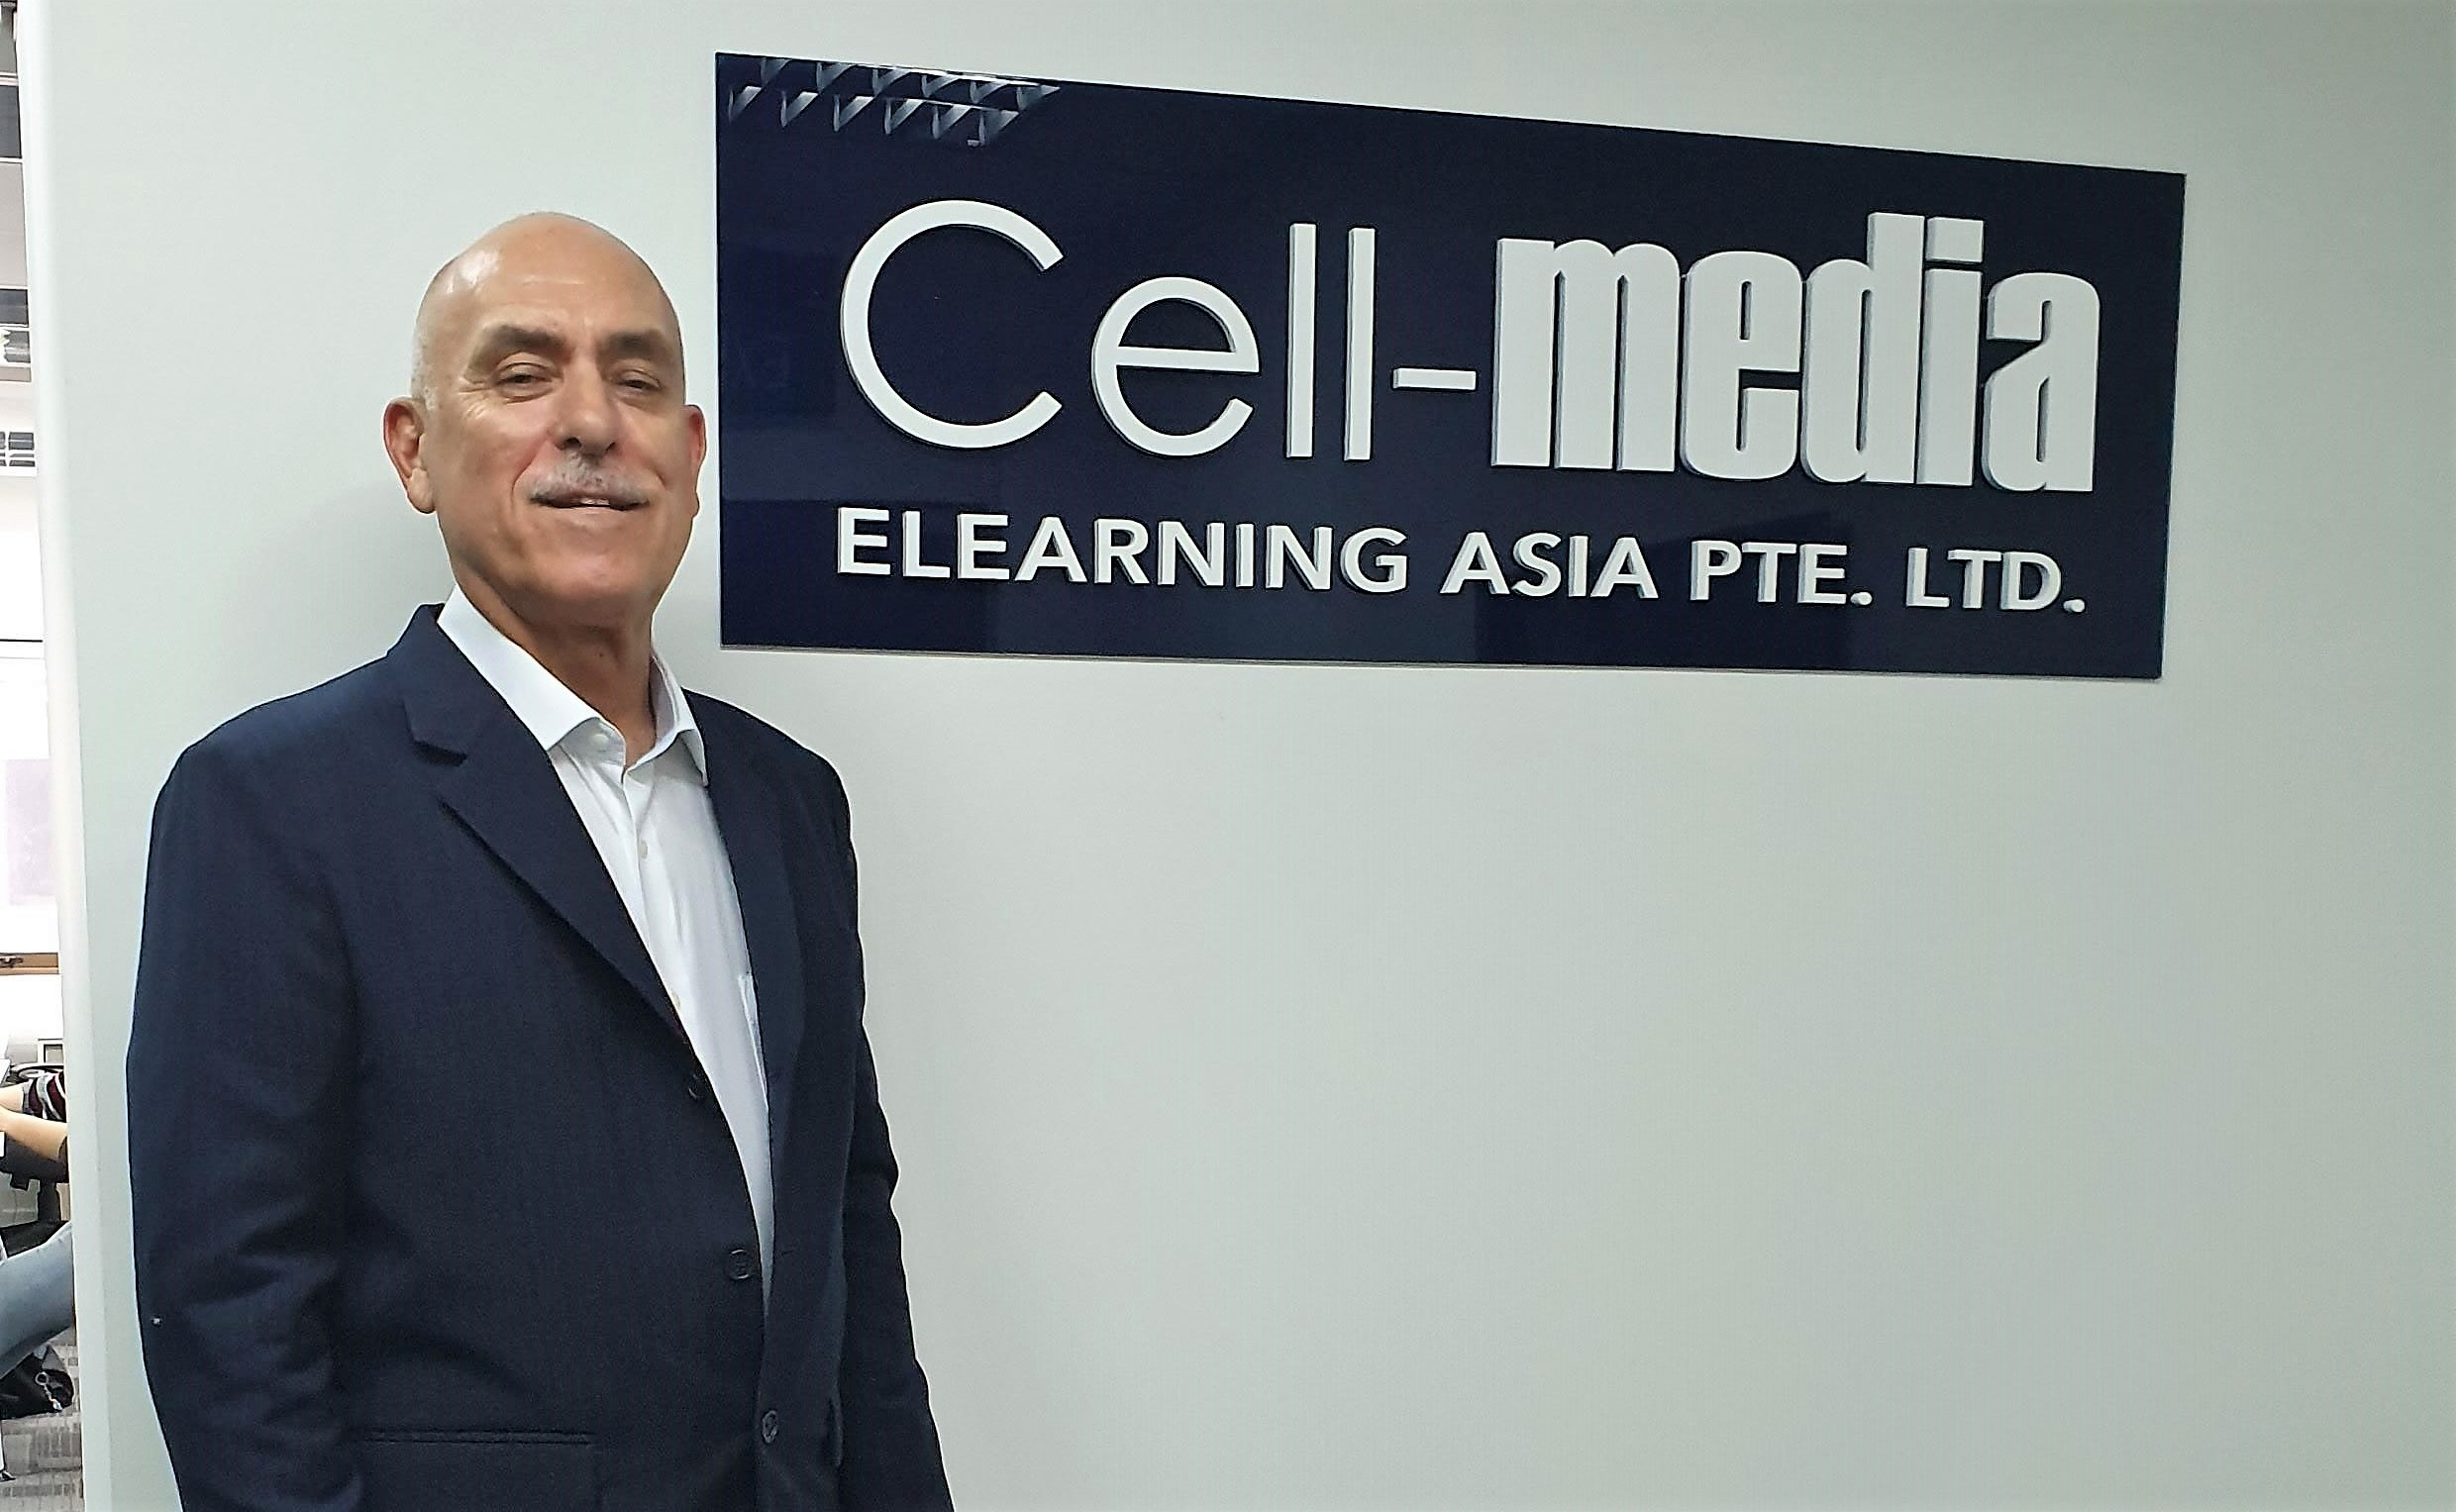 A Conversation with Steve Clarke of Cell Media Australia